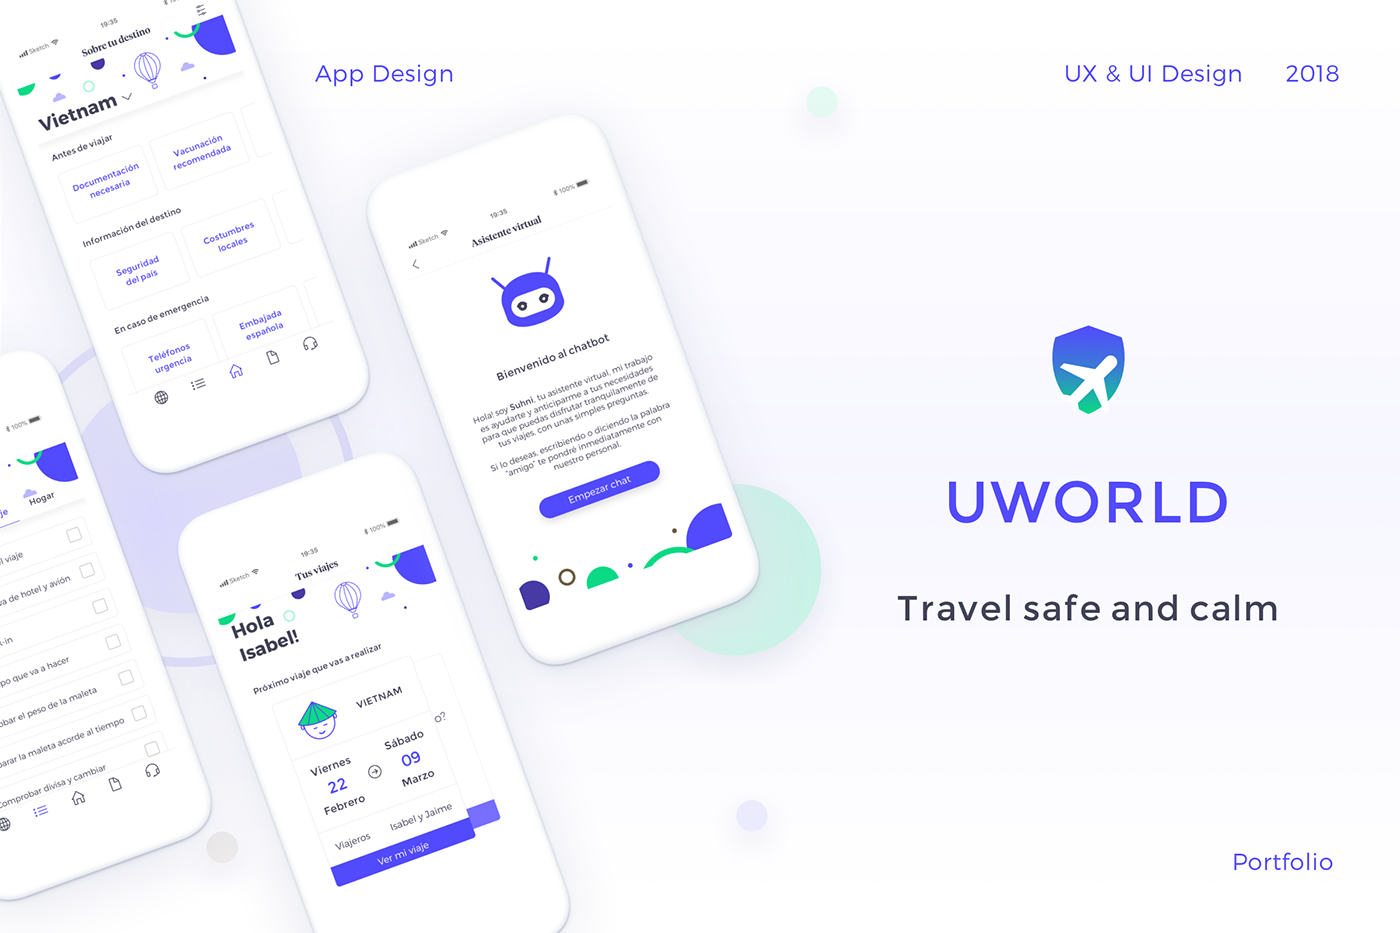 Pin by Dom Nguyen on UX Design | Case study, Travel, App